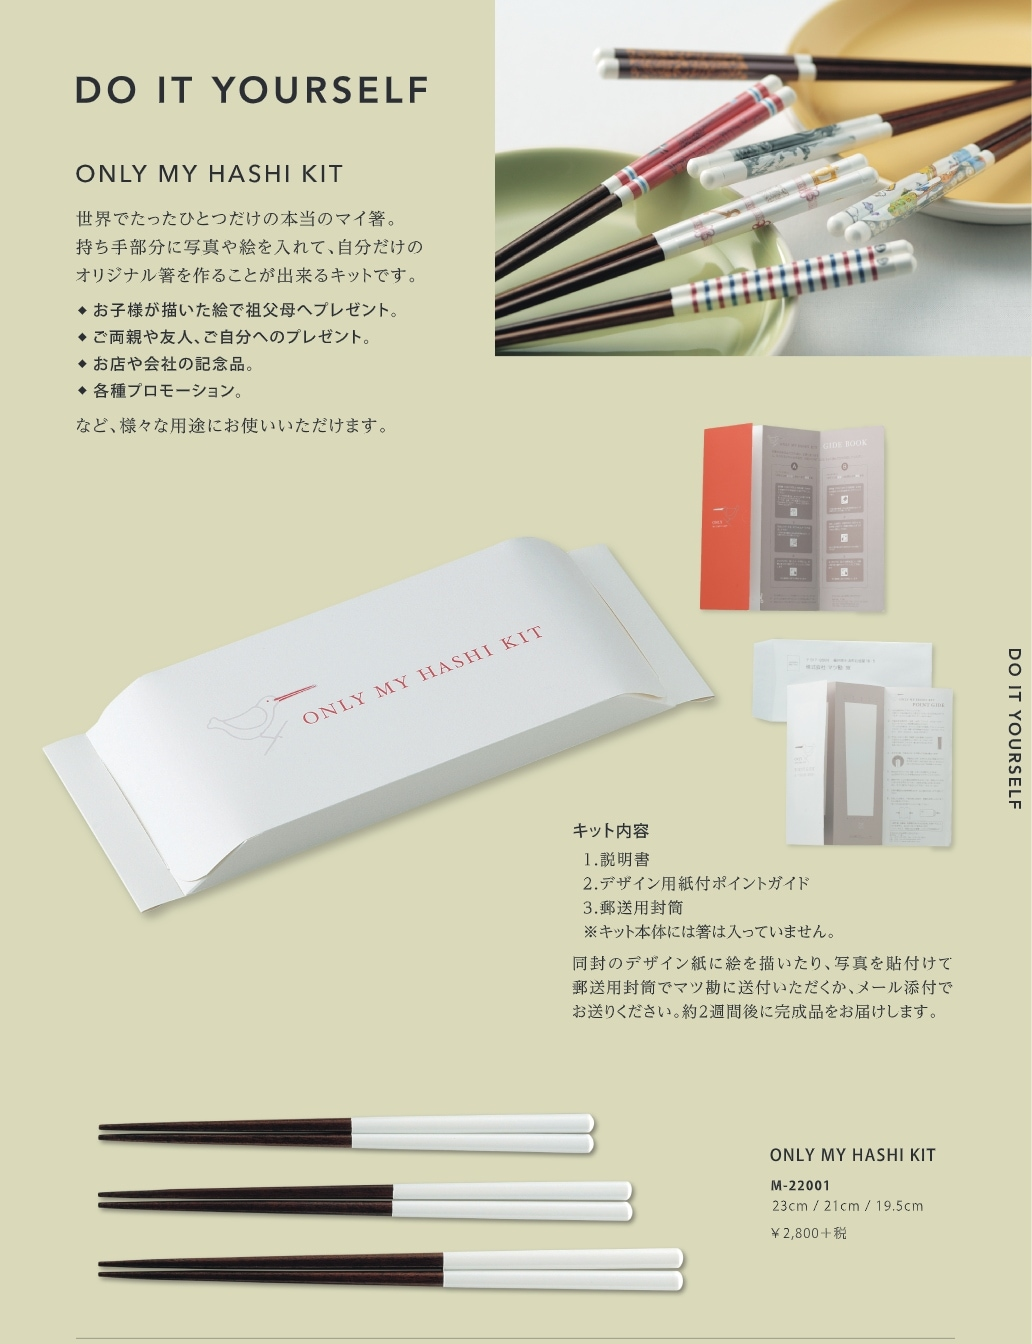 ONLY MY HASHI KIT 手作り箸